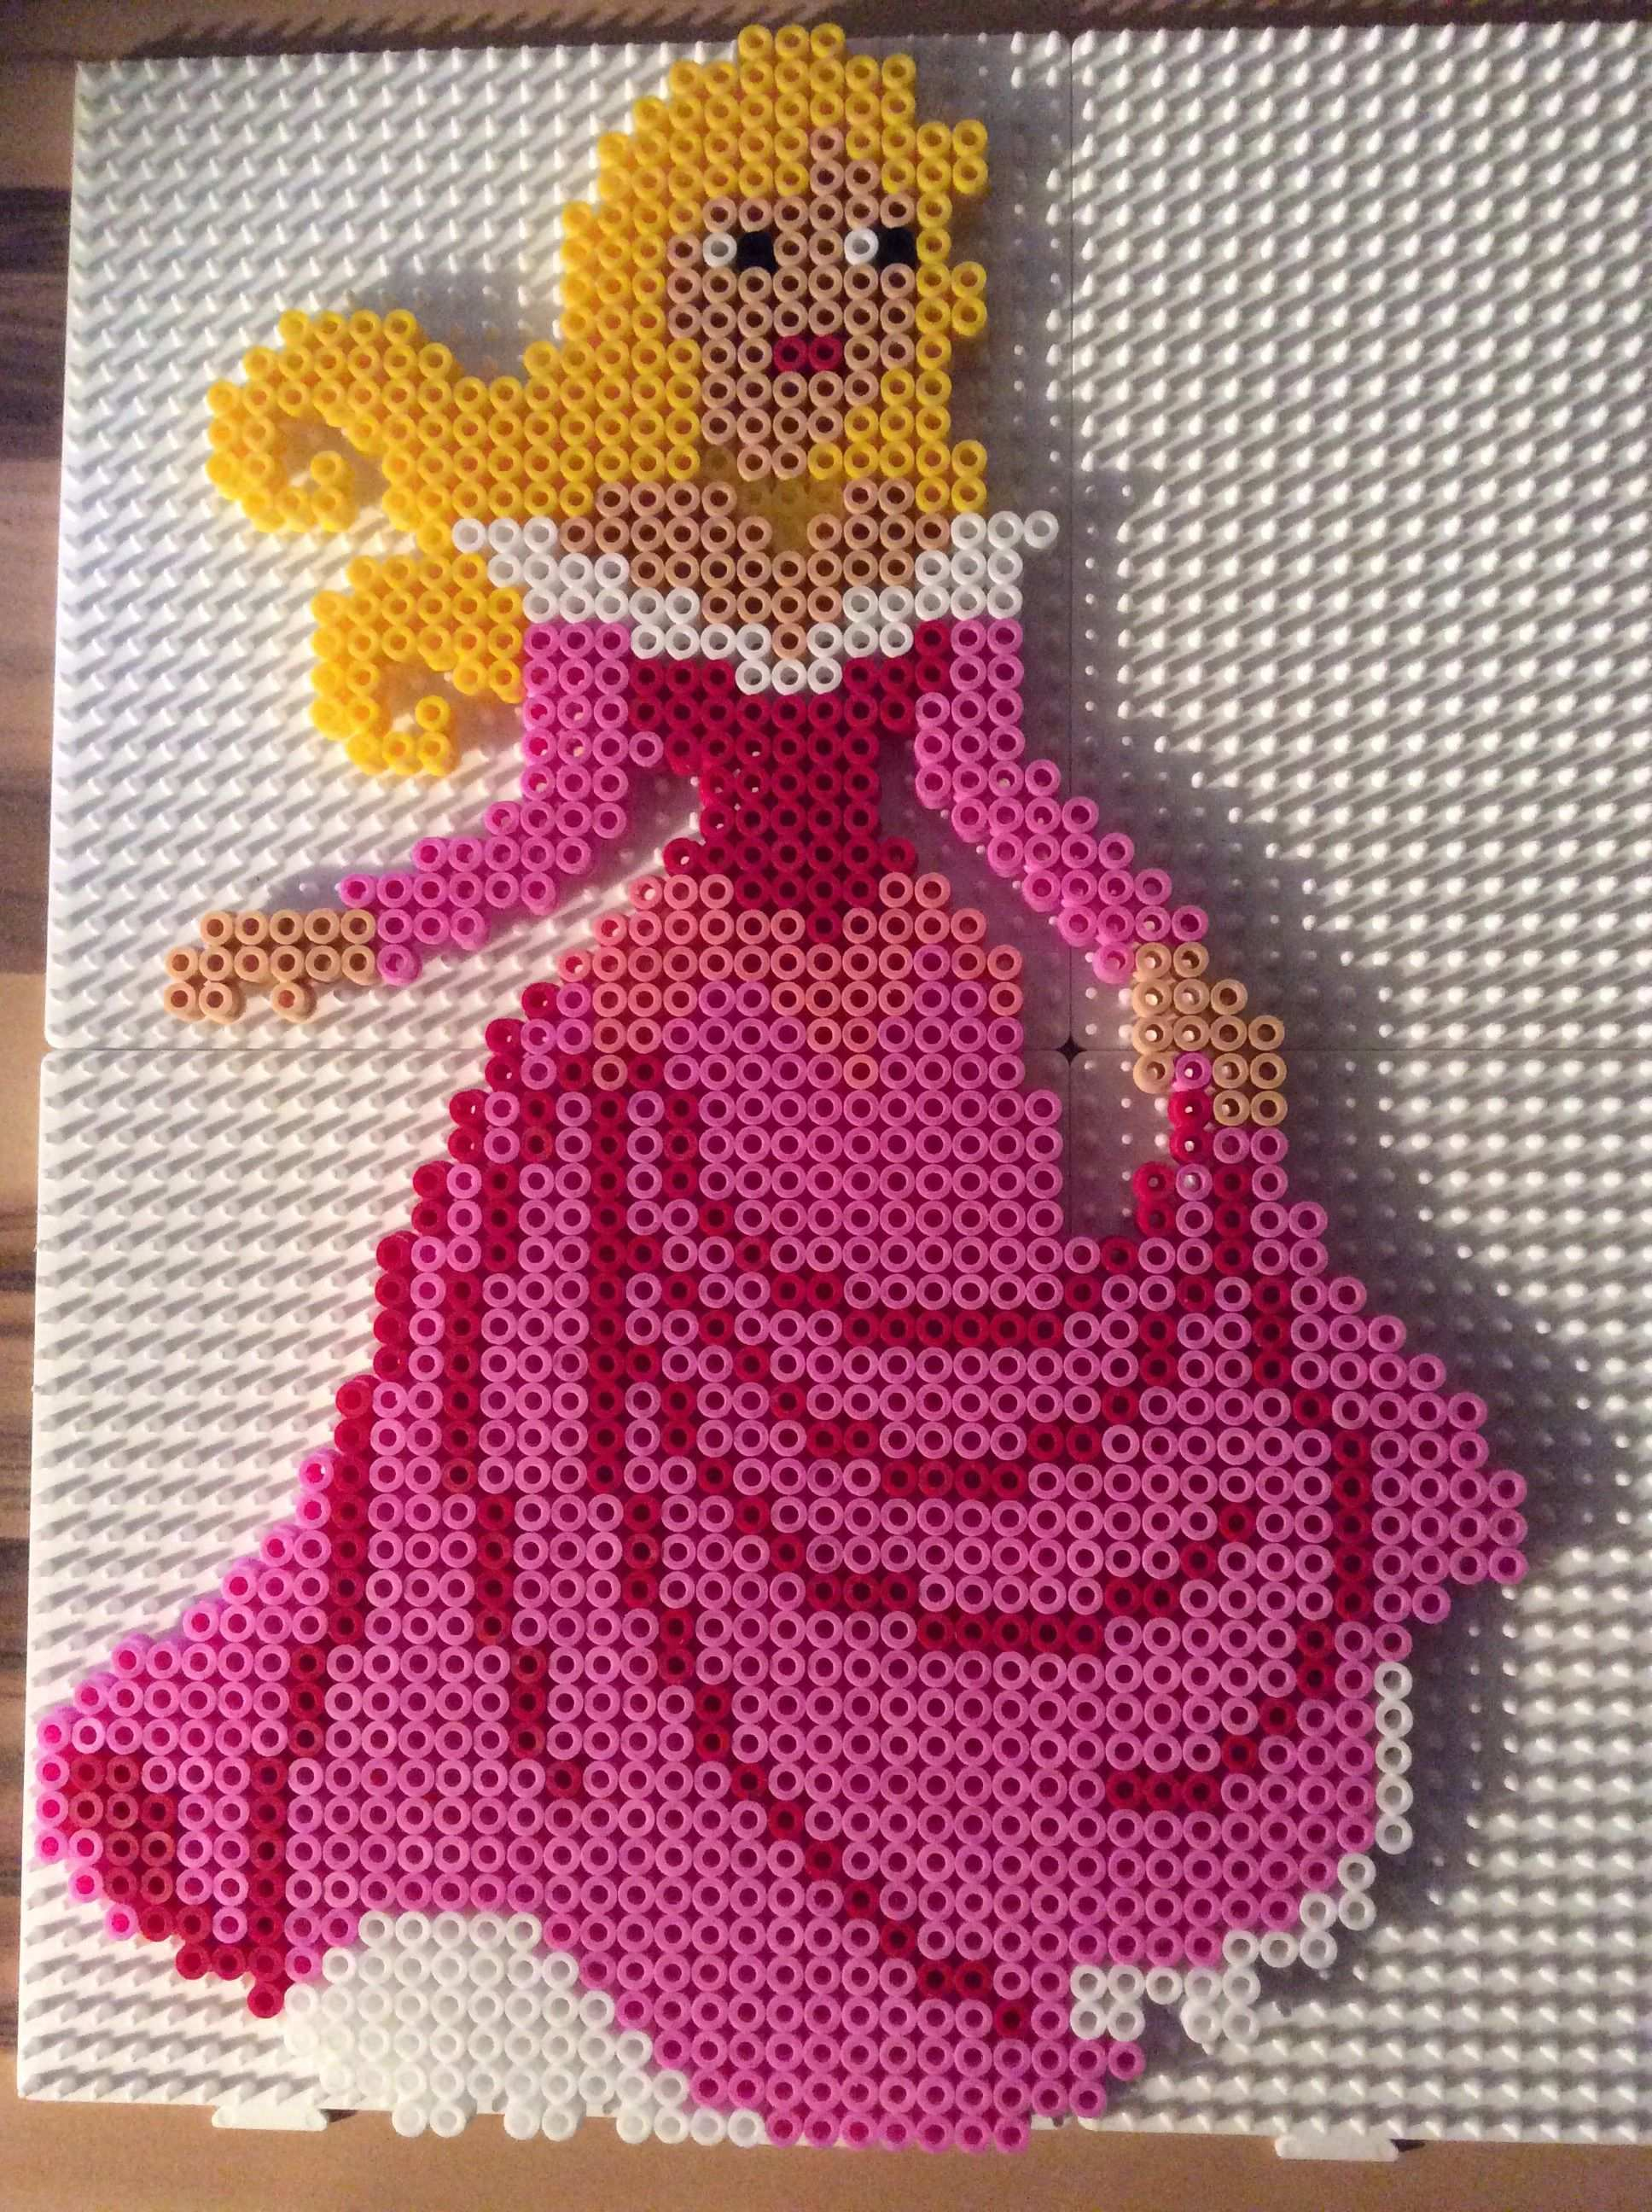 Disney Aurora Sleeping Beauty Hama Perler Beads By Angelika Witt Aktiviteter Perler Oppskrifter